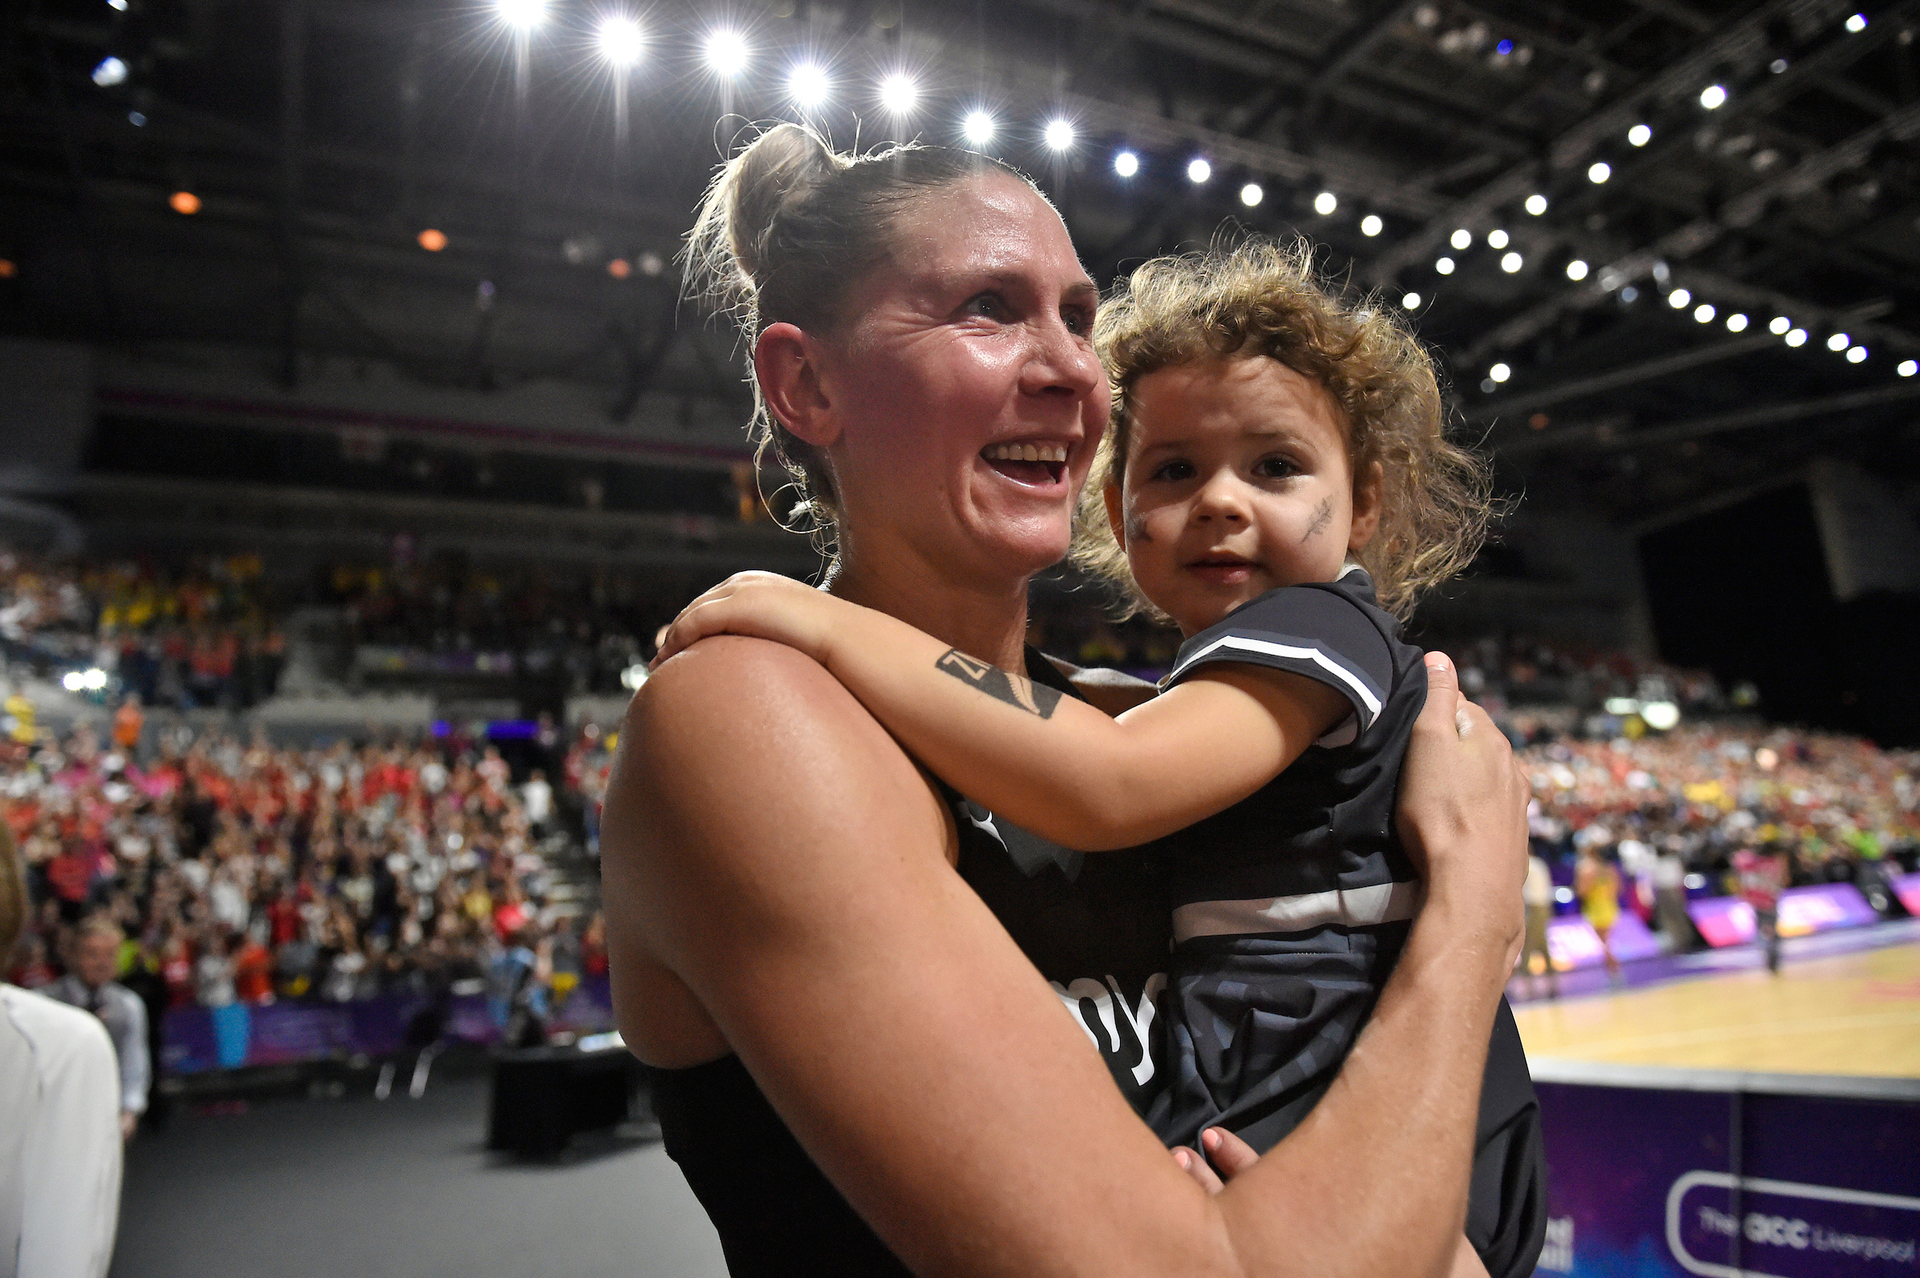 Silver Fern great found out she was pregnant after World Cup